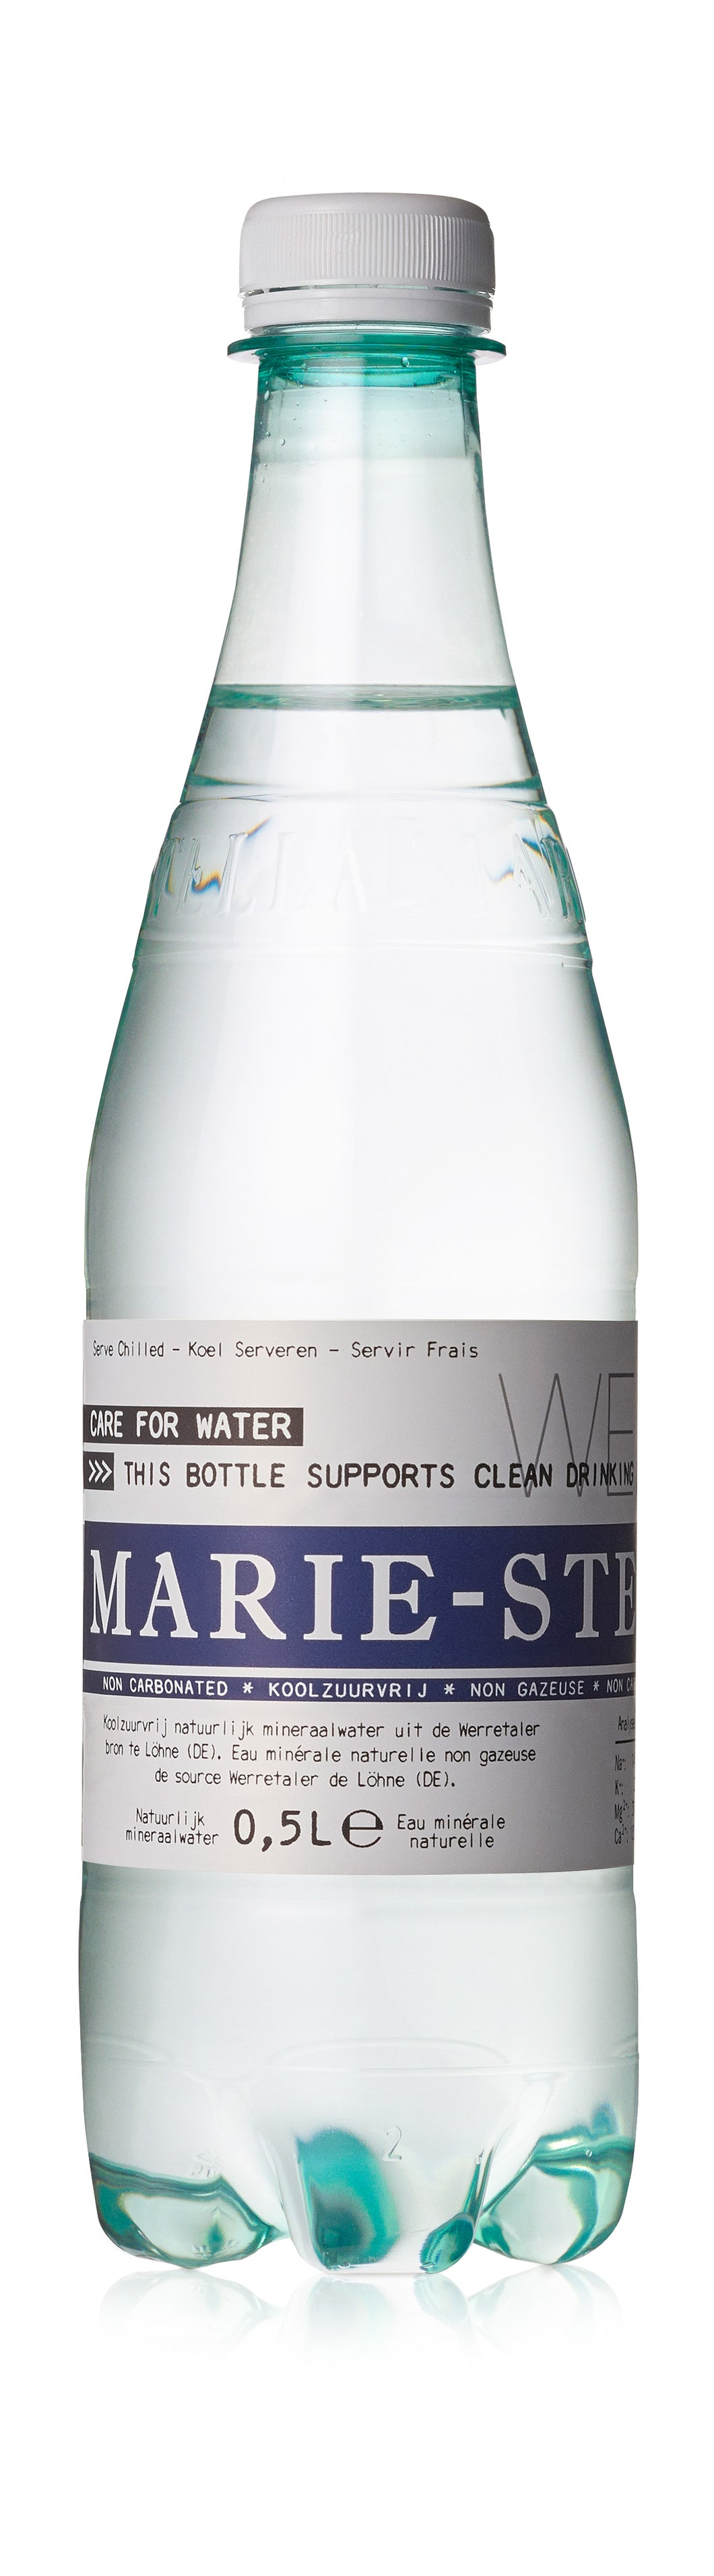 KRAT MARIE-STELLA-MARIS Still Water 50 cl PET